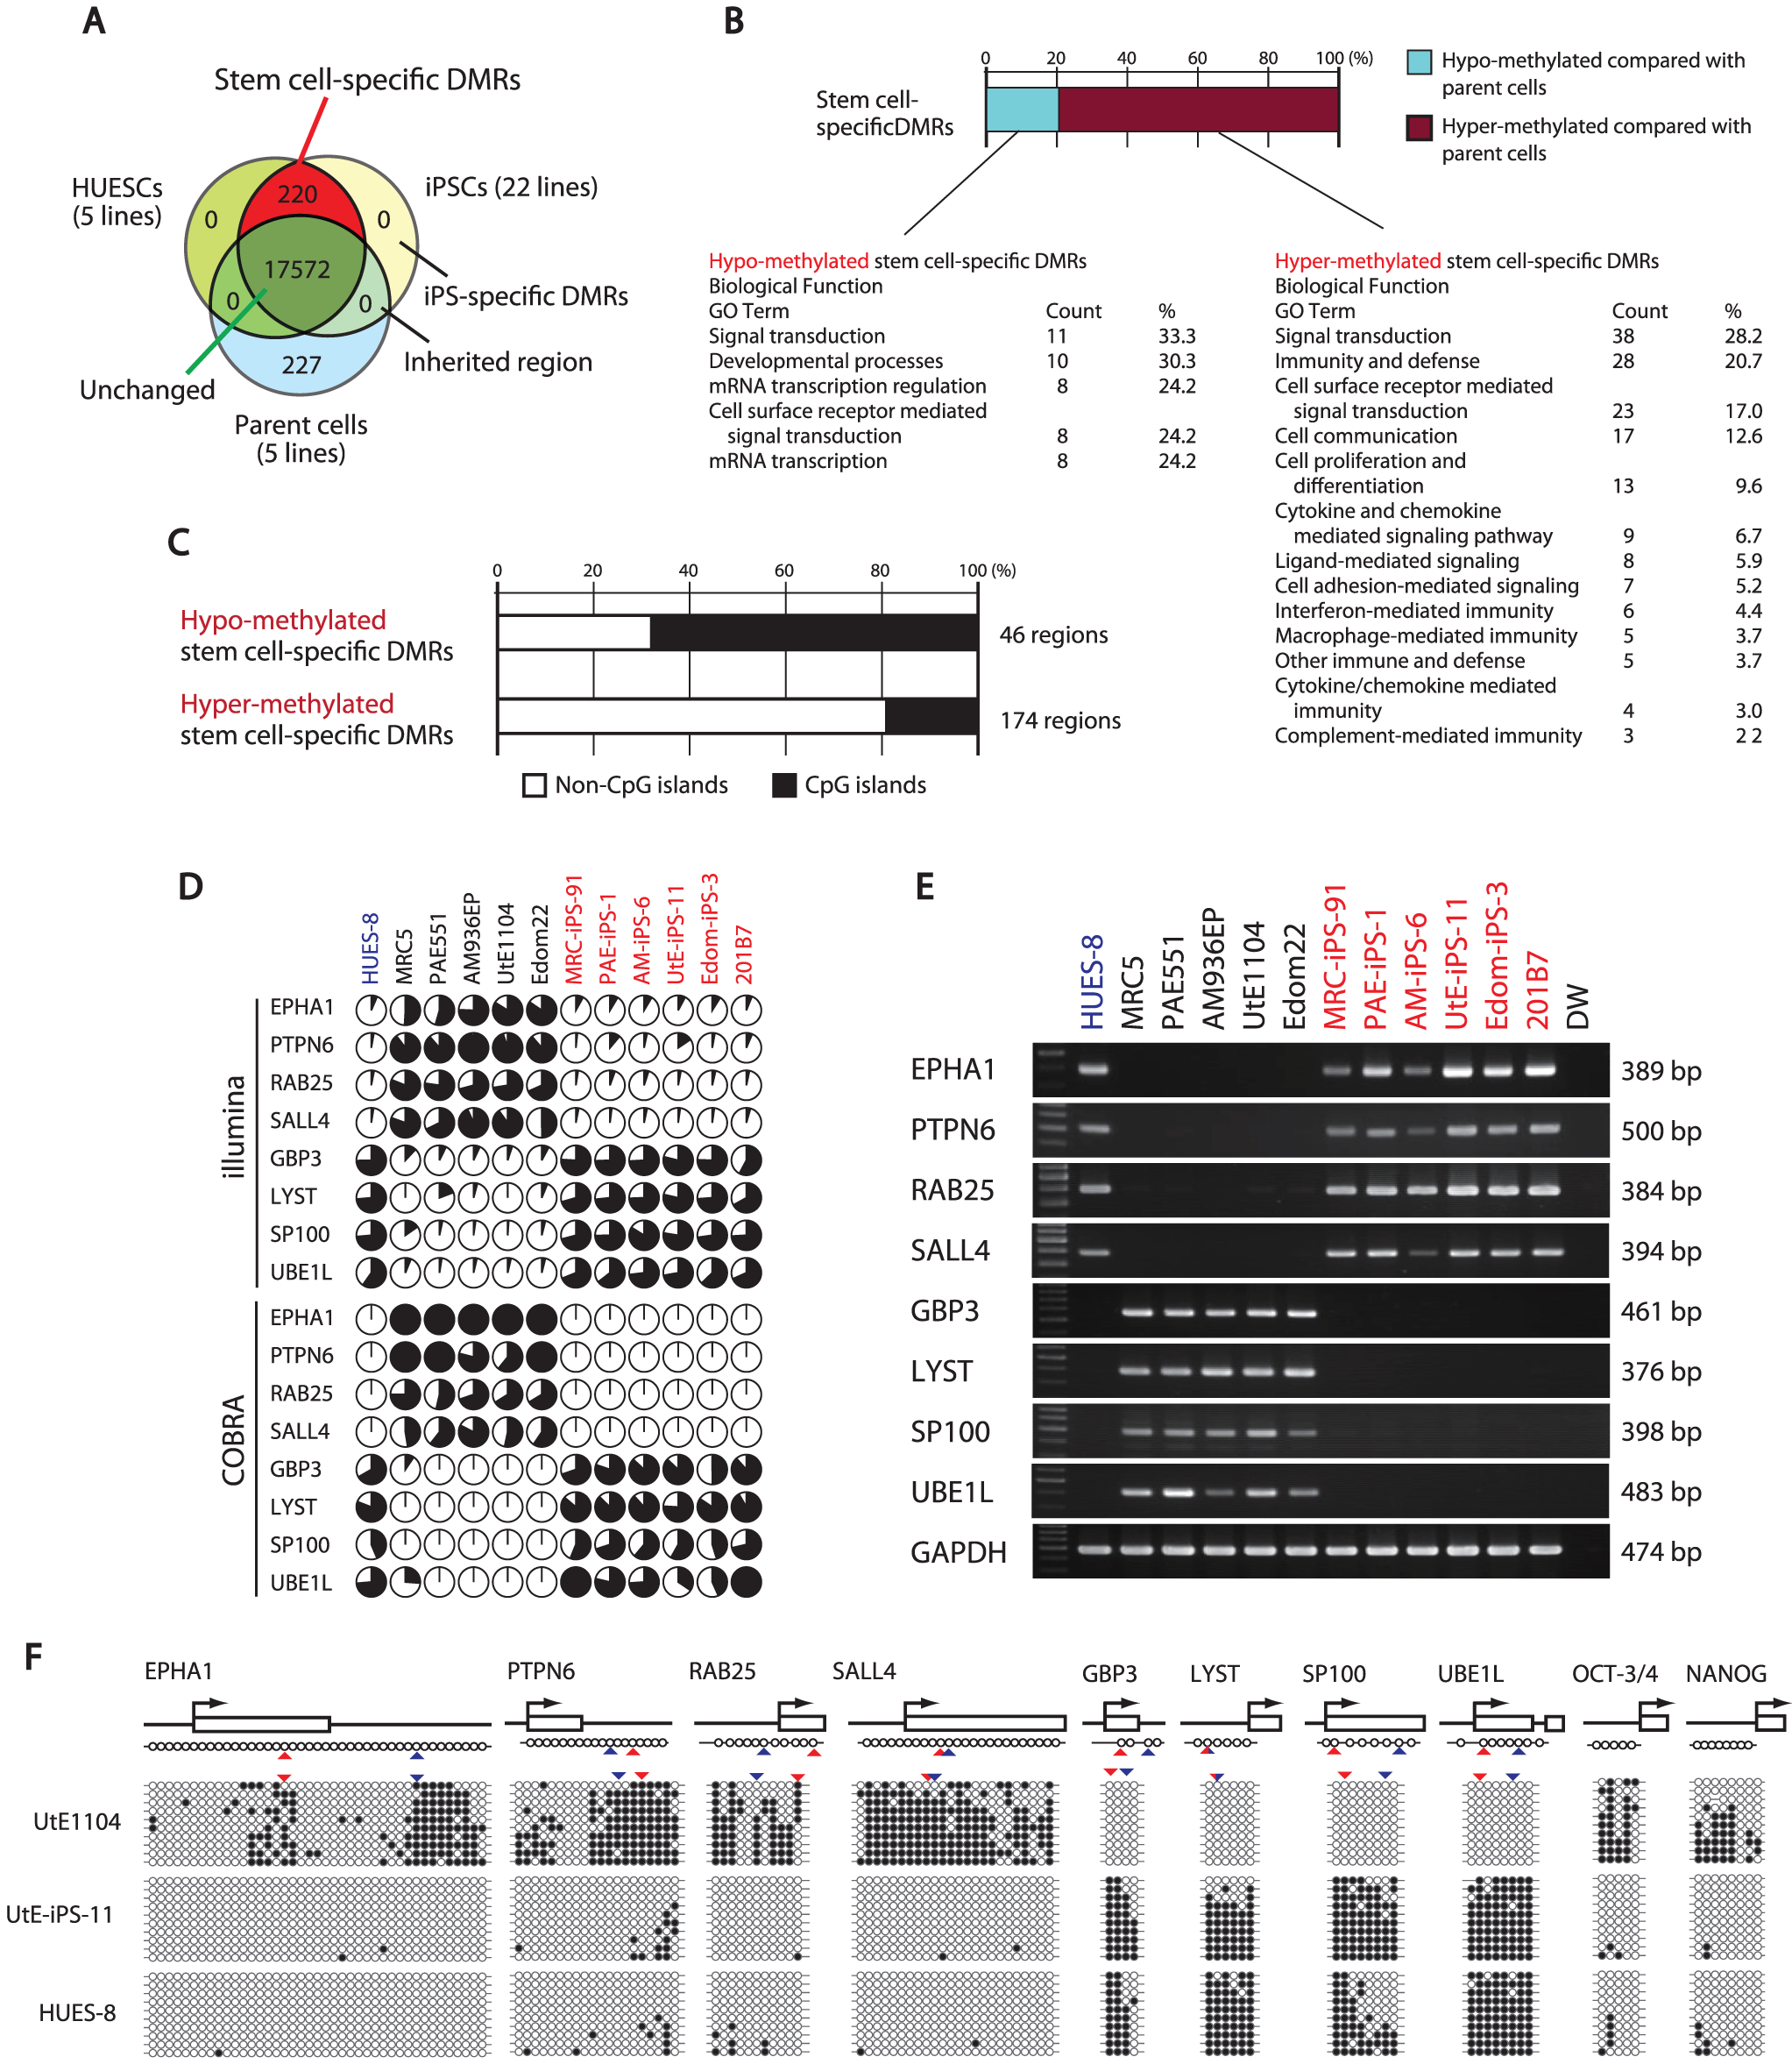 Defining stem cell-specific DMRs as novel epigenetic iPS markers.